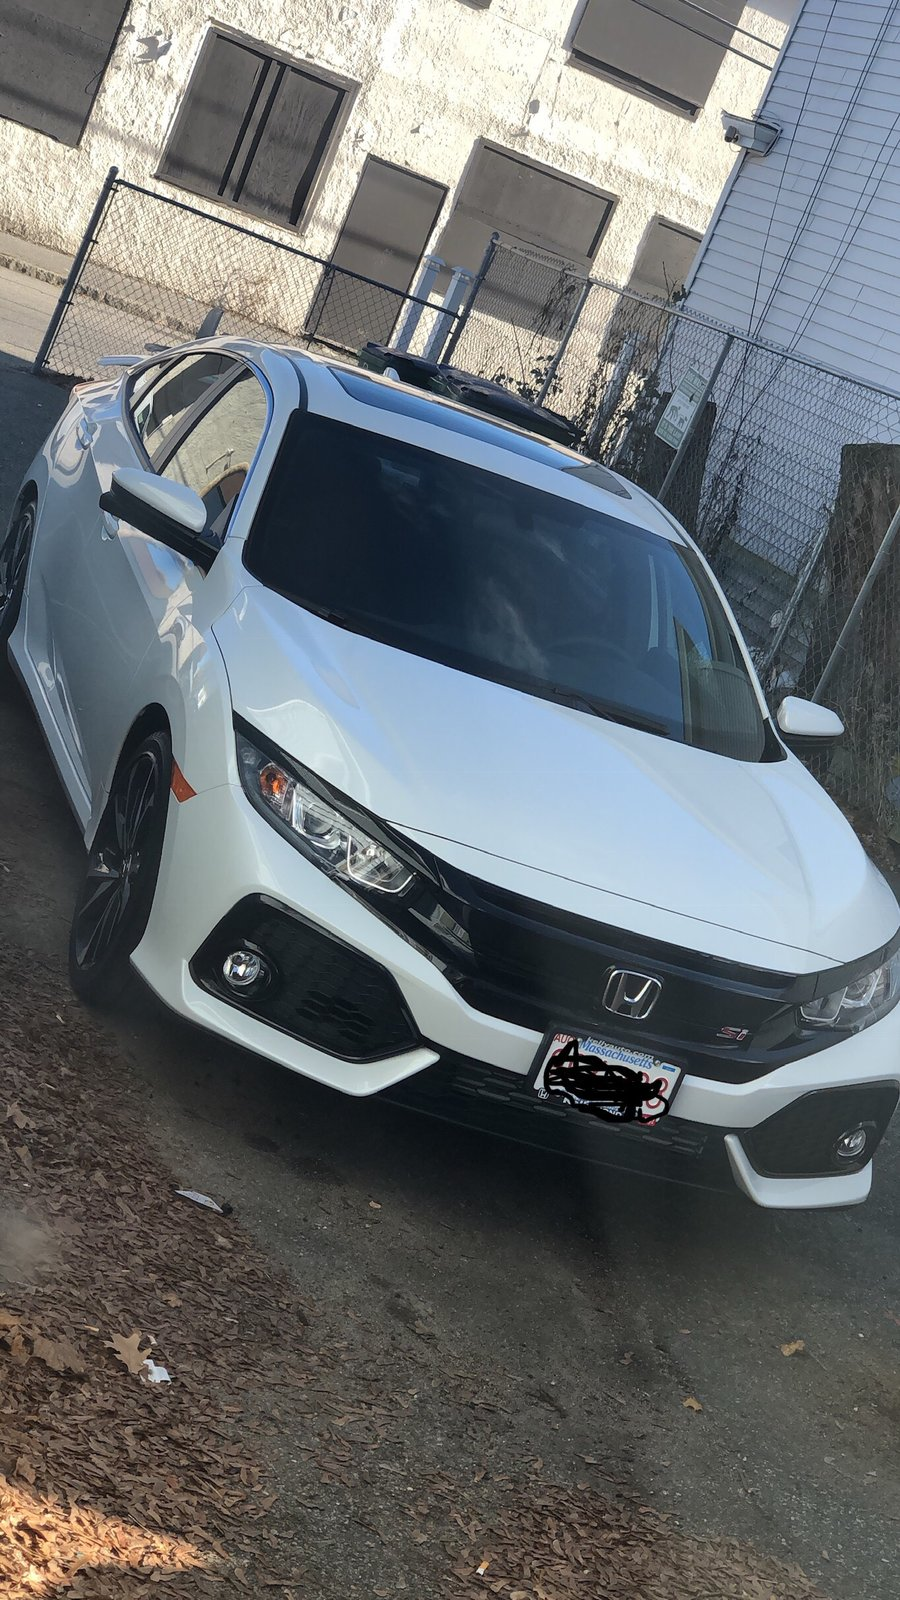 Honda Civic Modifications : honda, civic, modifications, Sedan, Modification?, 2016+, Honda, Civic, Forum, (10th, Forum,, CivicX.com